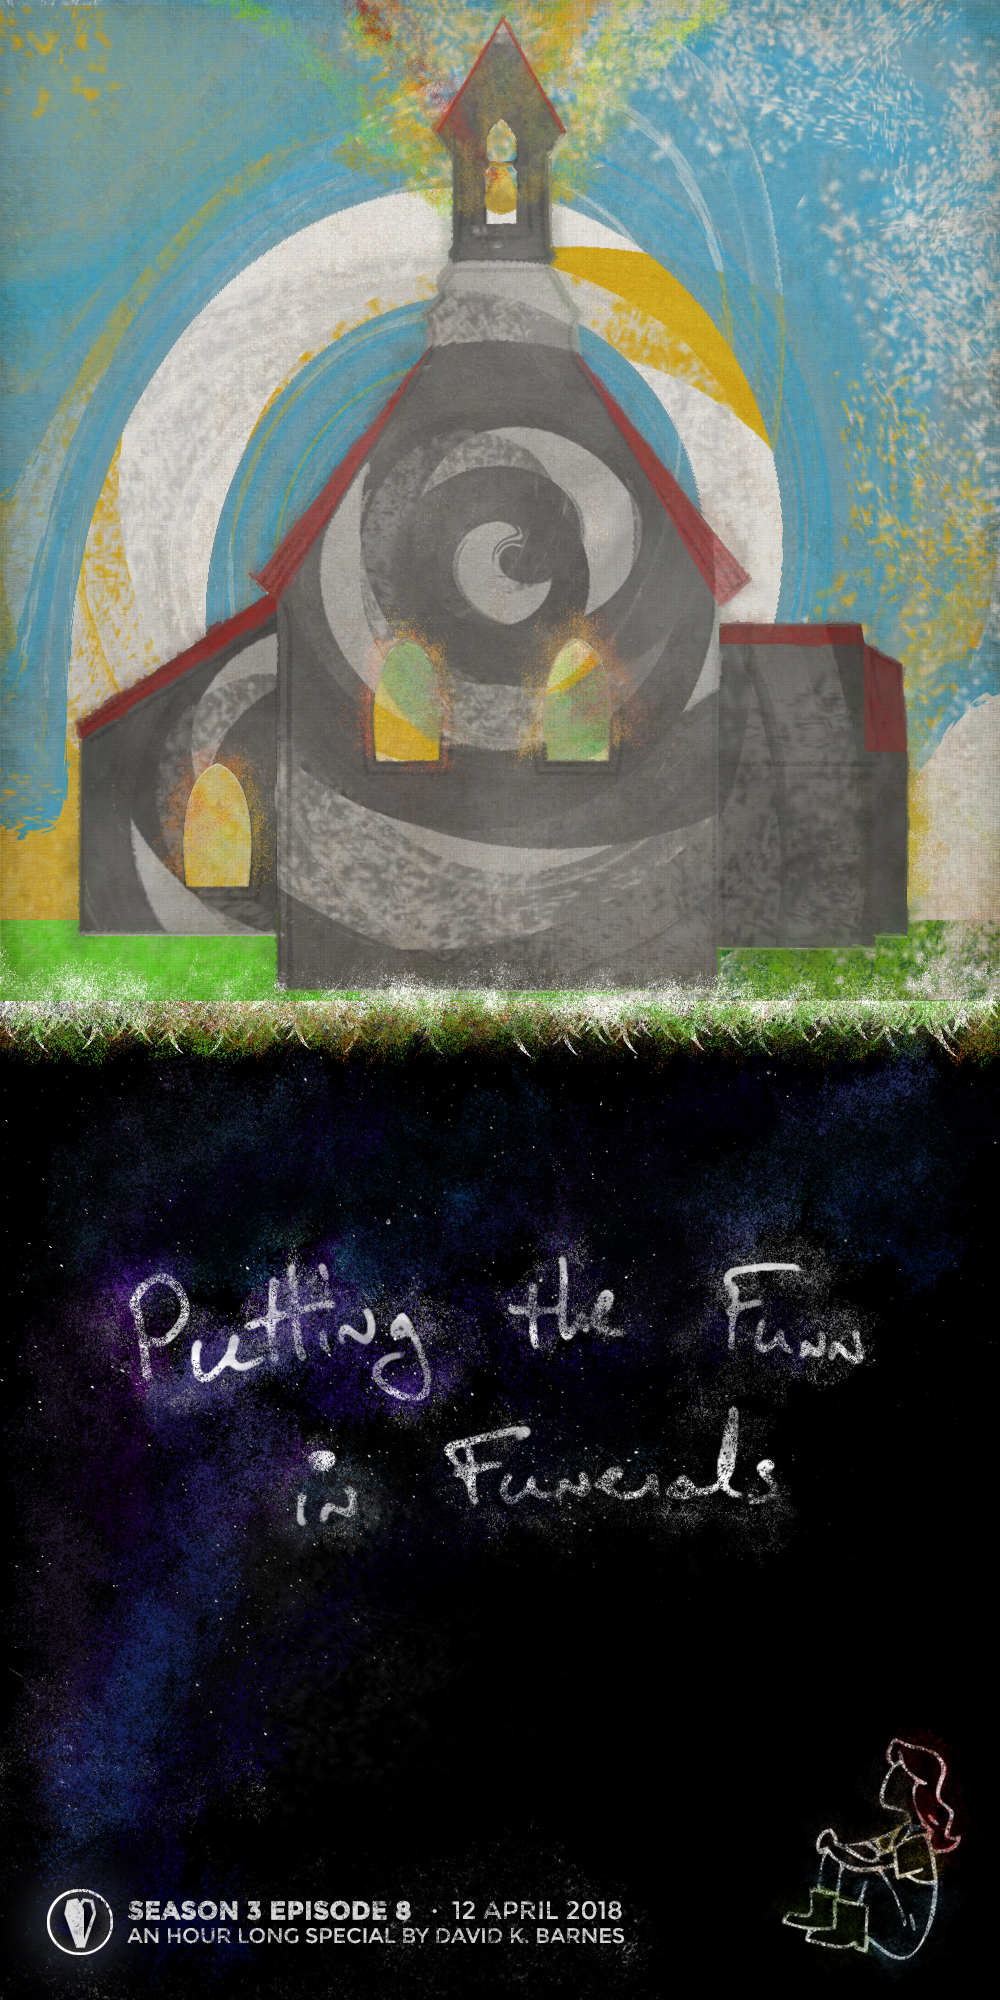 Putting the Funn in Funerals Poster.jpg